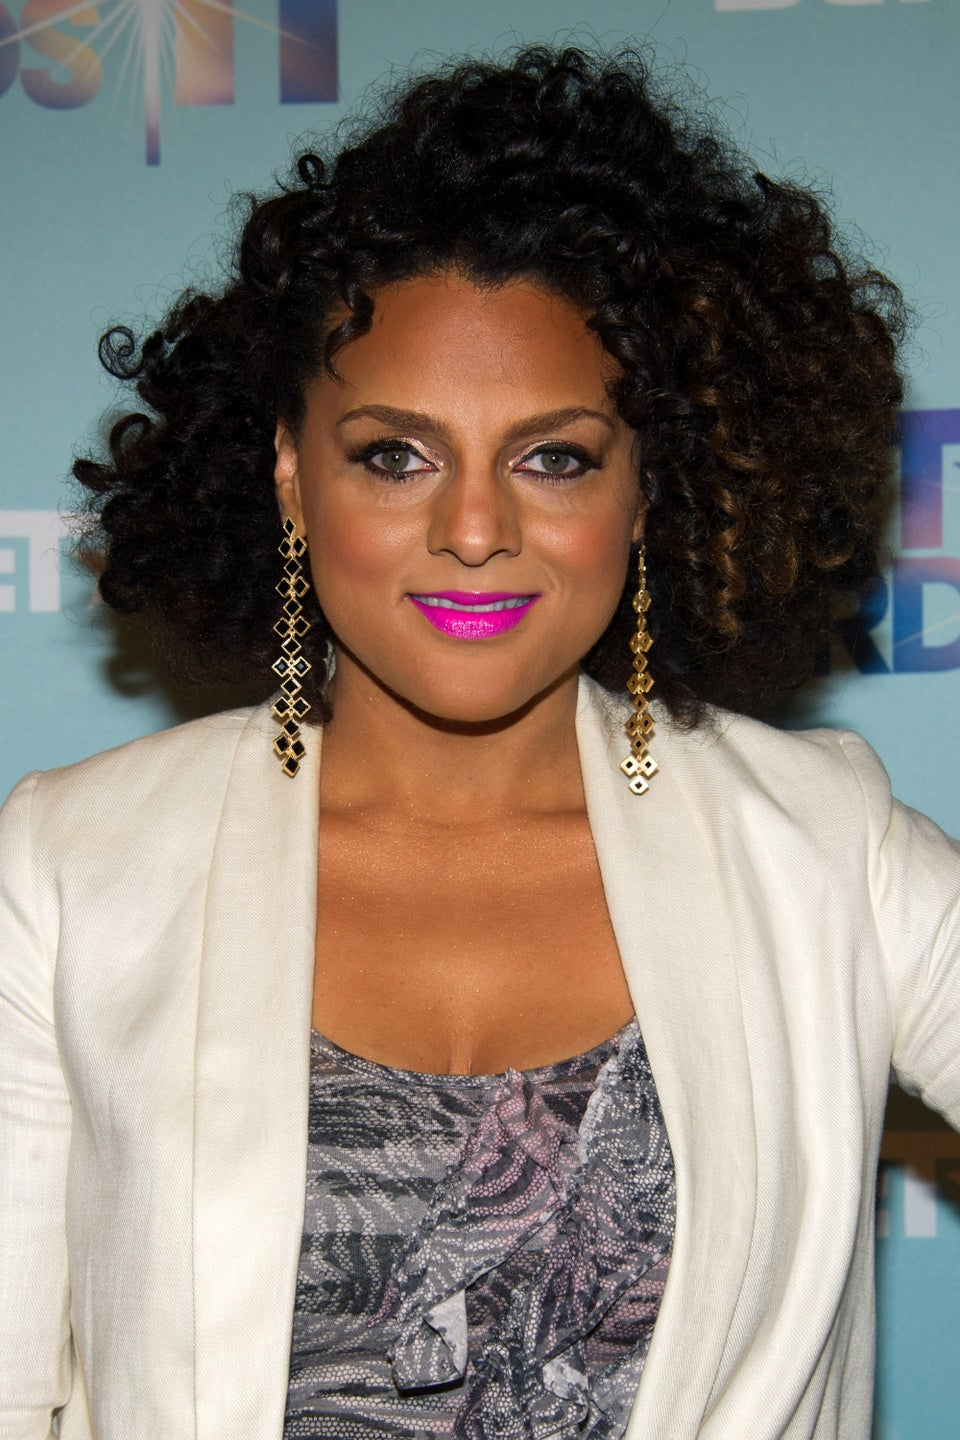 Marsha Ambrosius on Grammys: 'Winning Is All I Ever Wanted'